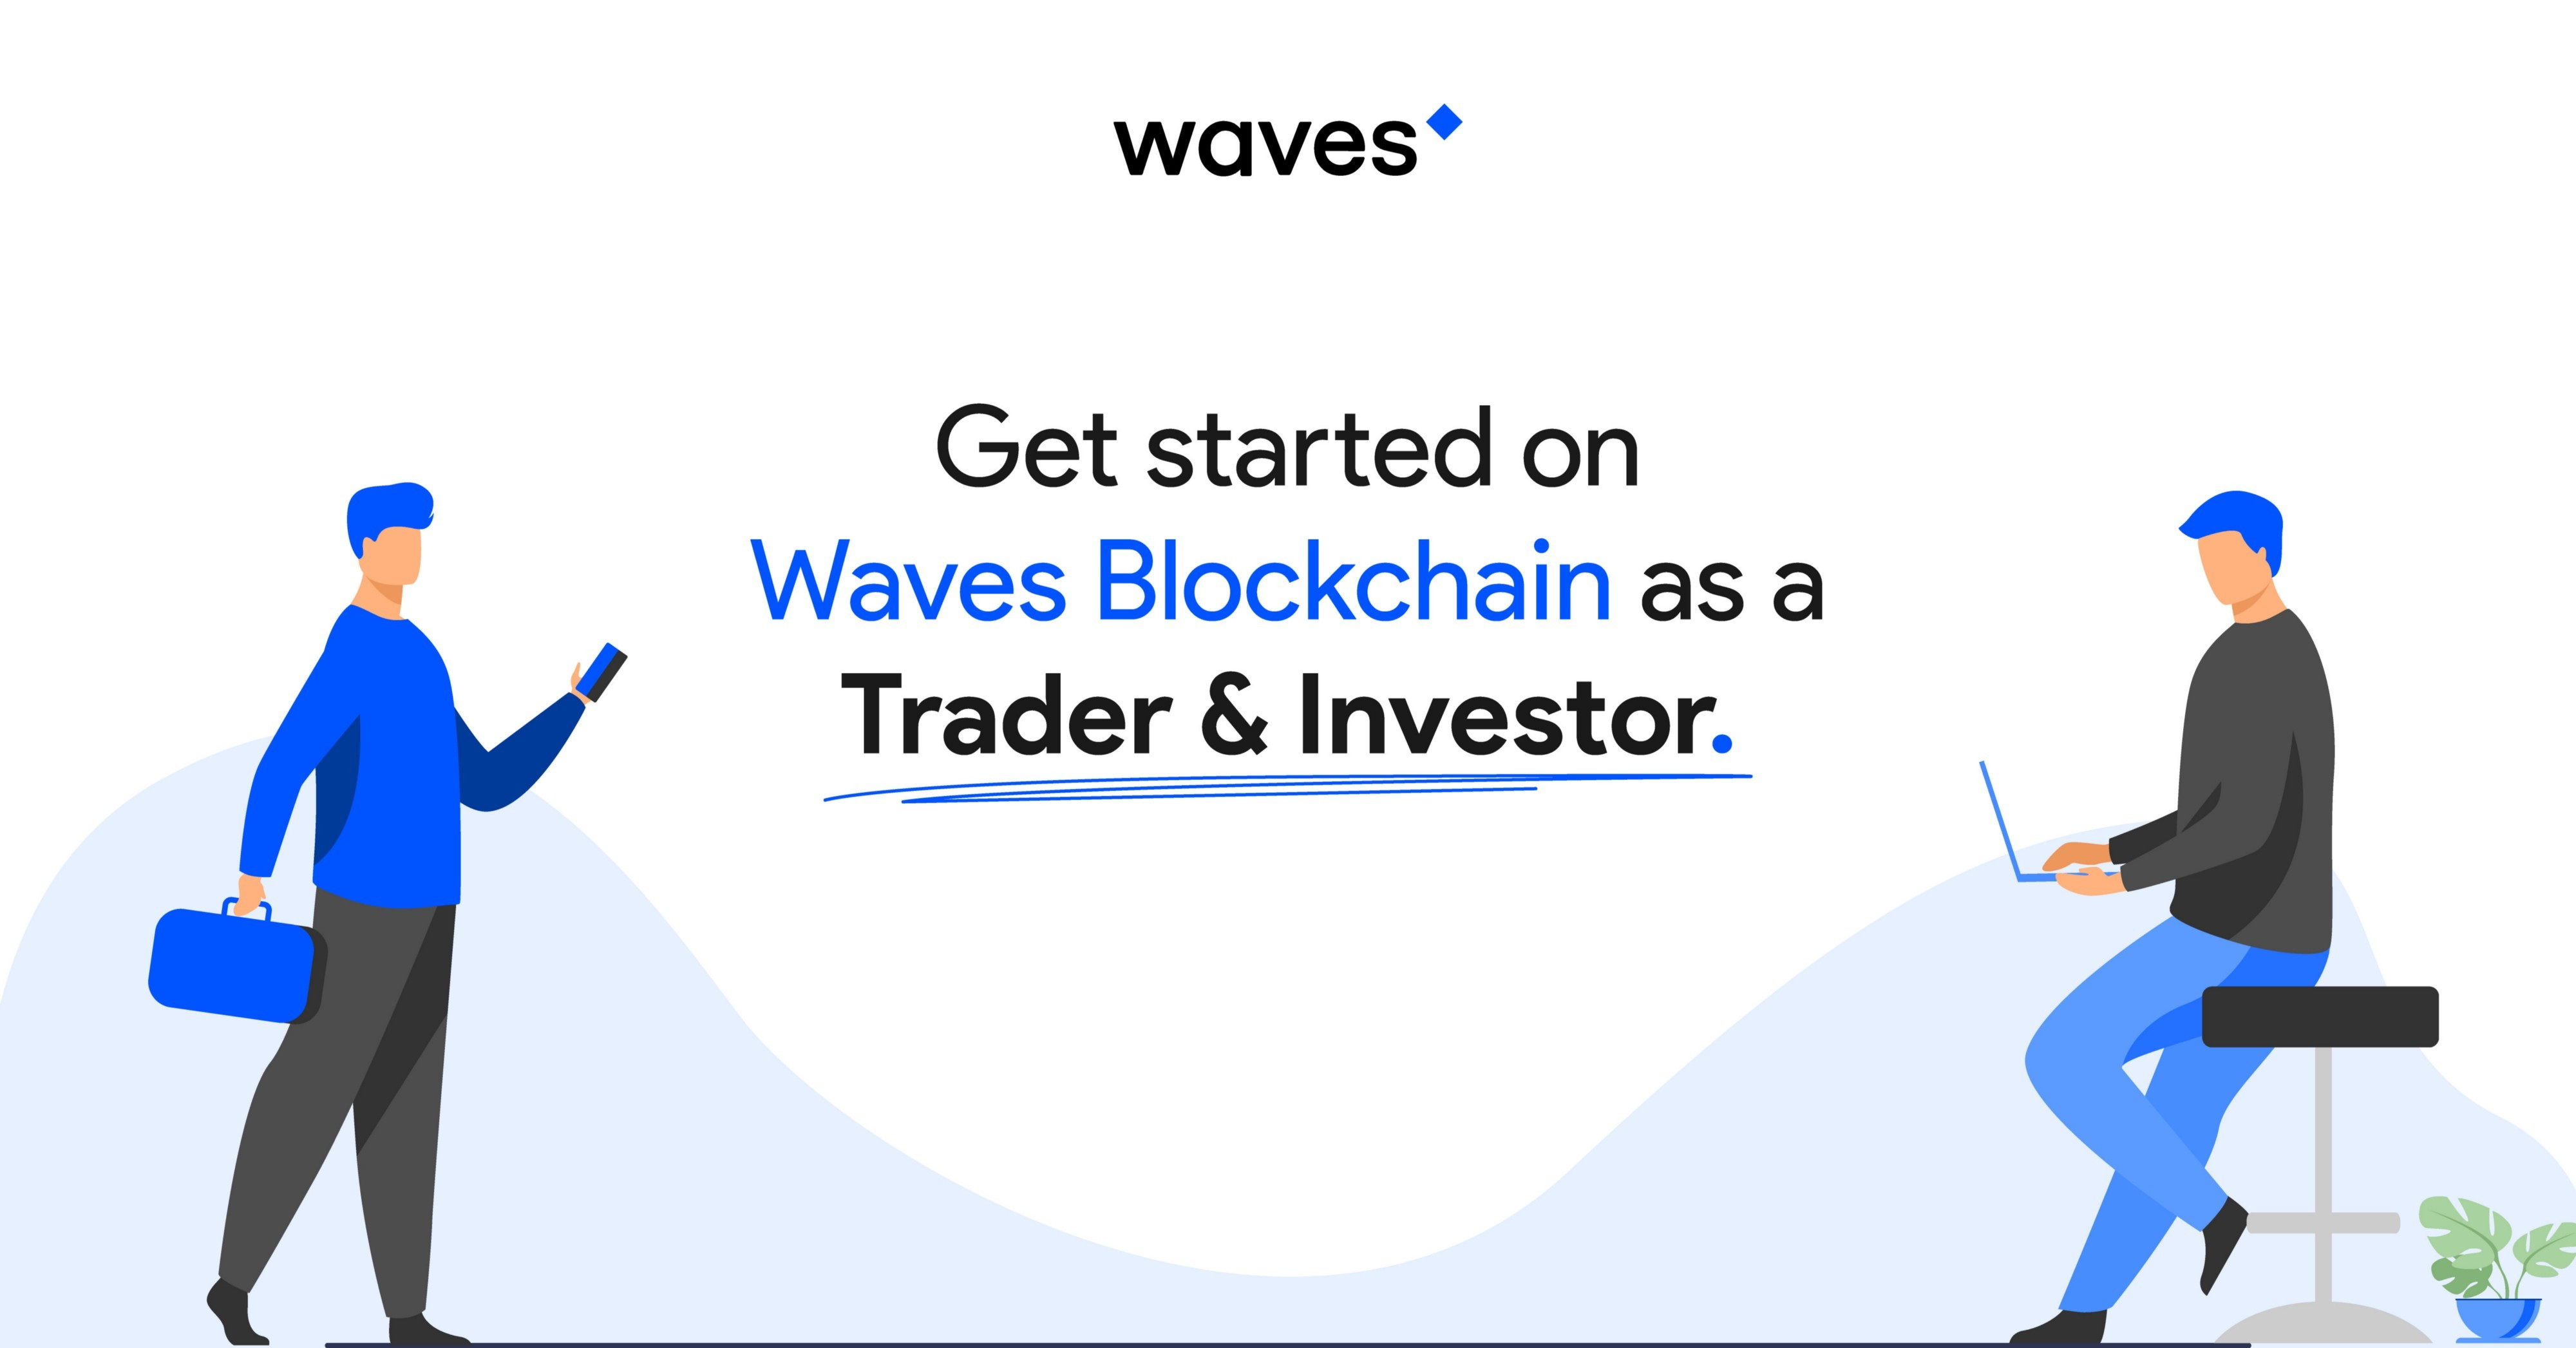 Cover image for Exploring the Trading, Investment & DeFi Opportunities on Waves